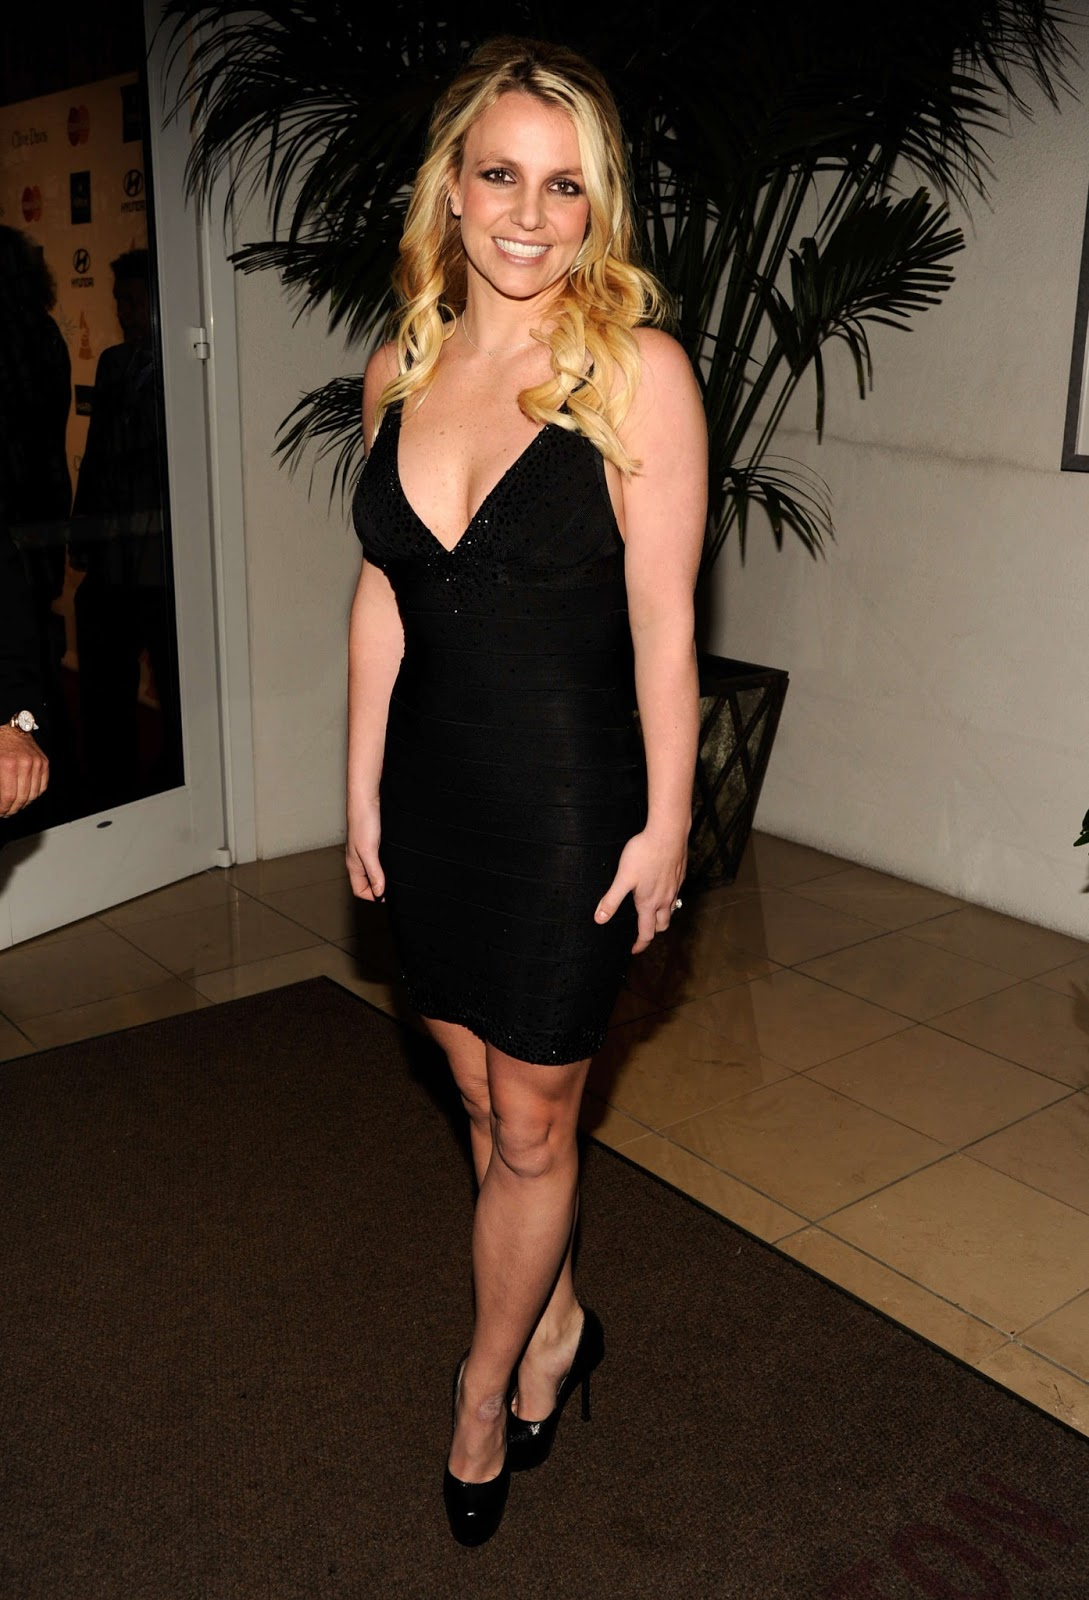 http://4.bp.blogspot.com/-WPfN-WAxey0/UO1fNsEB-ZI/AAAAAAAAHQc/p5Sa3J4Wo98/s1600/Britney+Spears+cleavage+amd+legs+at+Clive+Davis+Pre+Grammy+Gala+In+Beverly+Hills-03.jpg